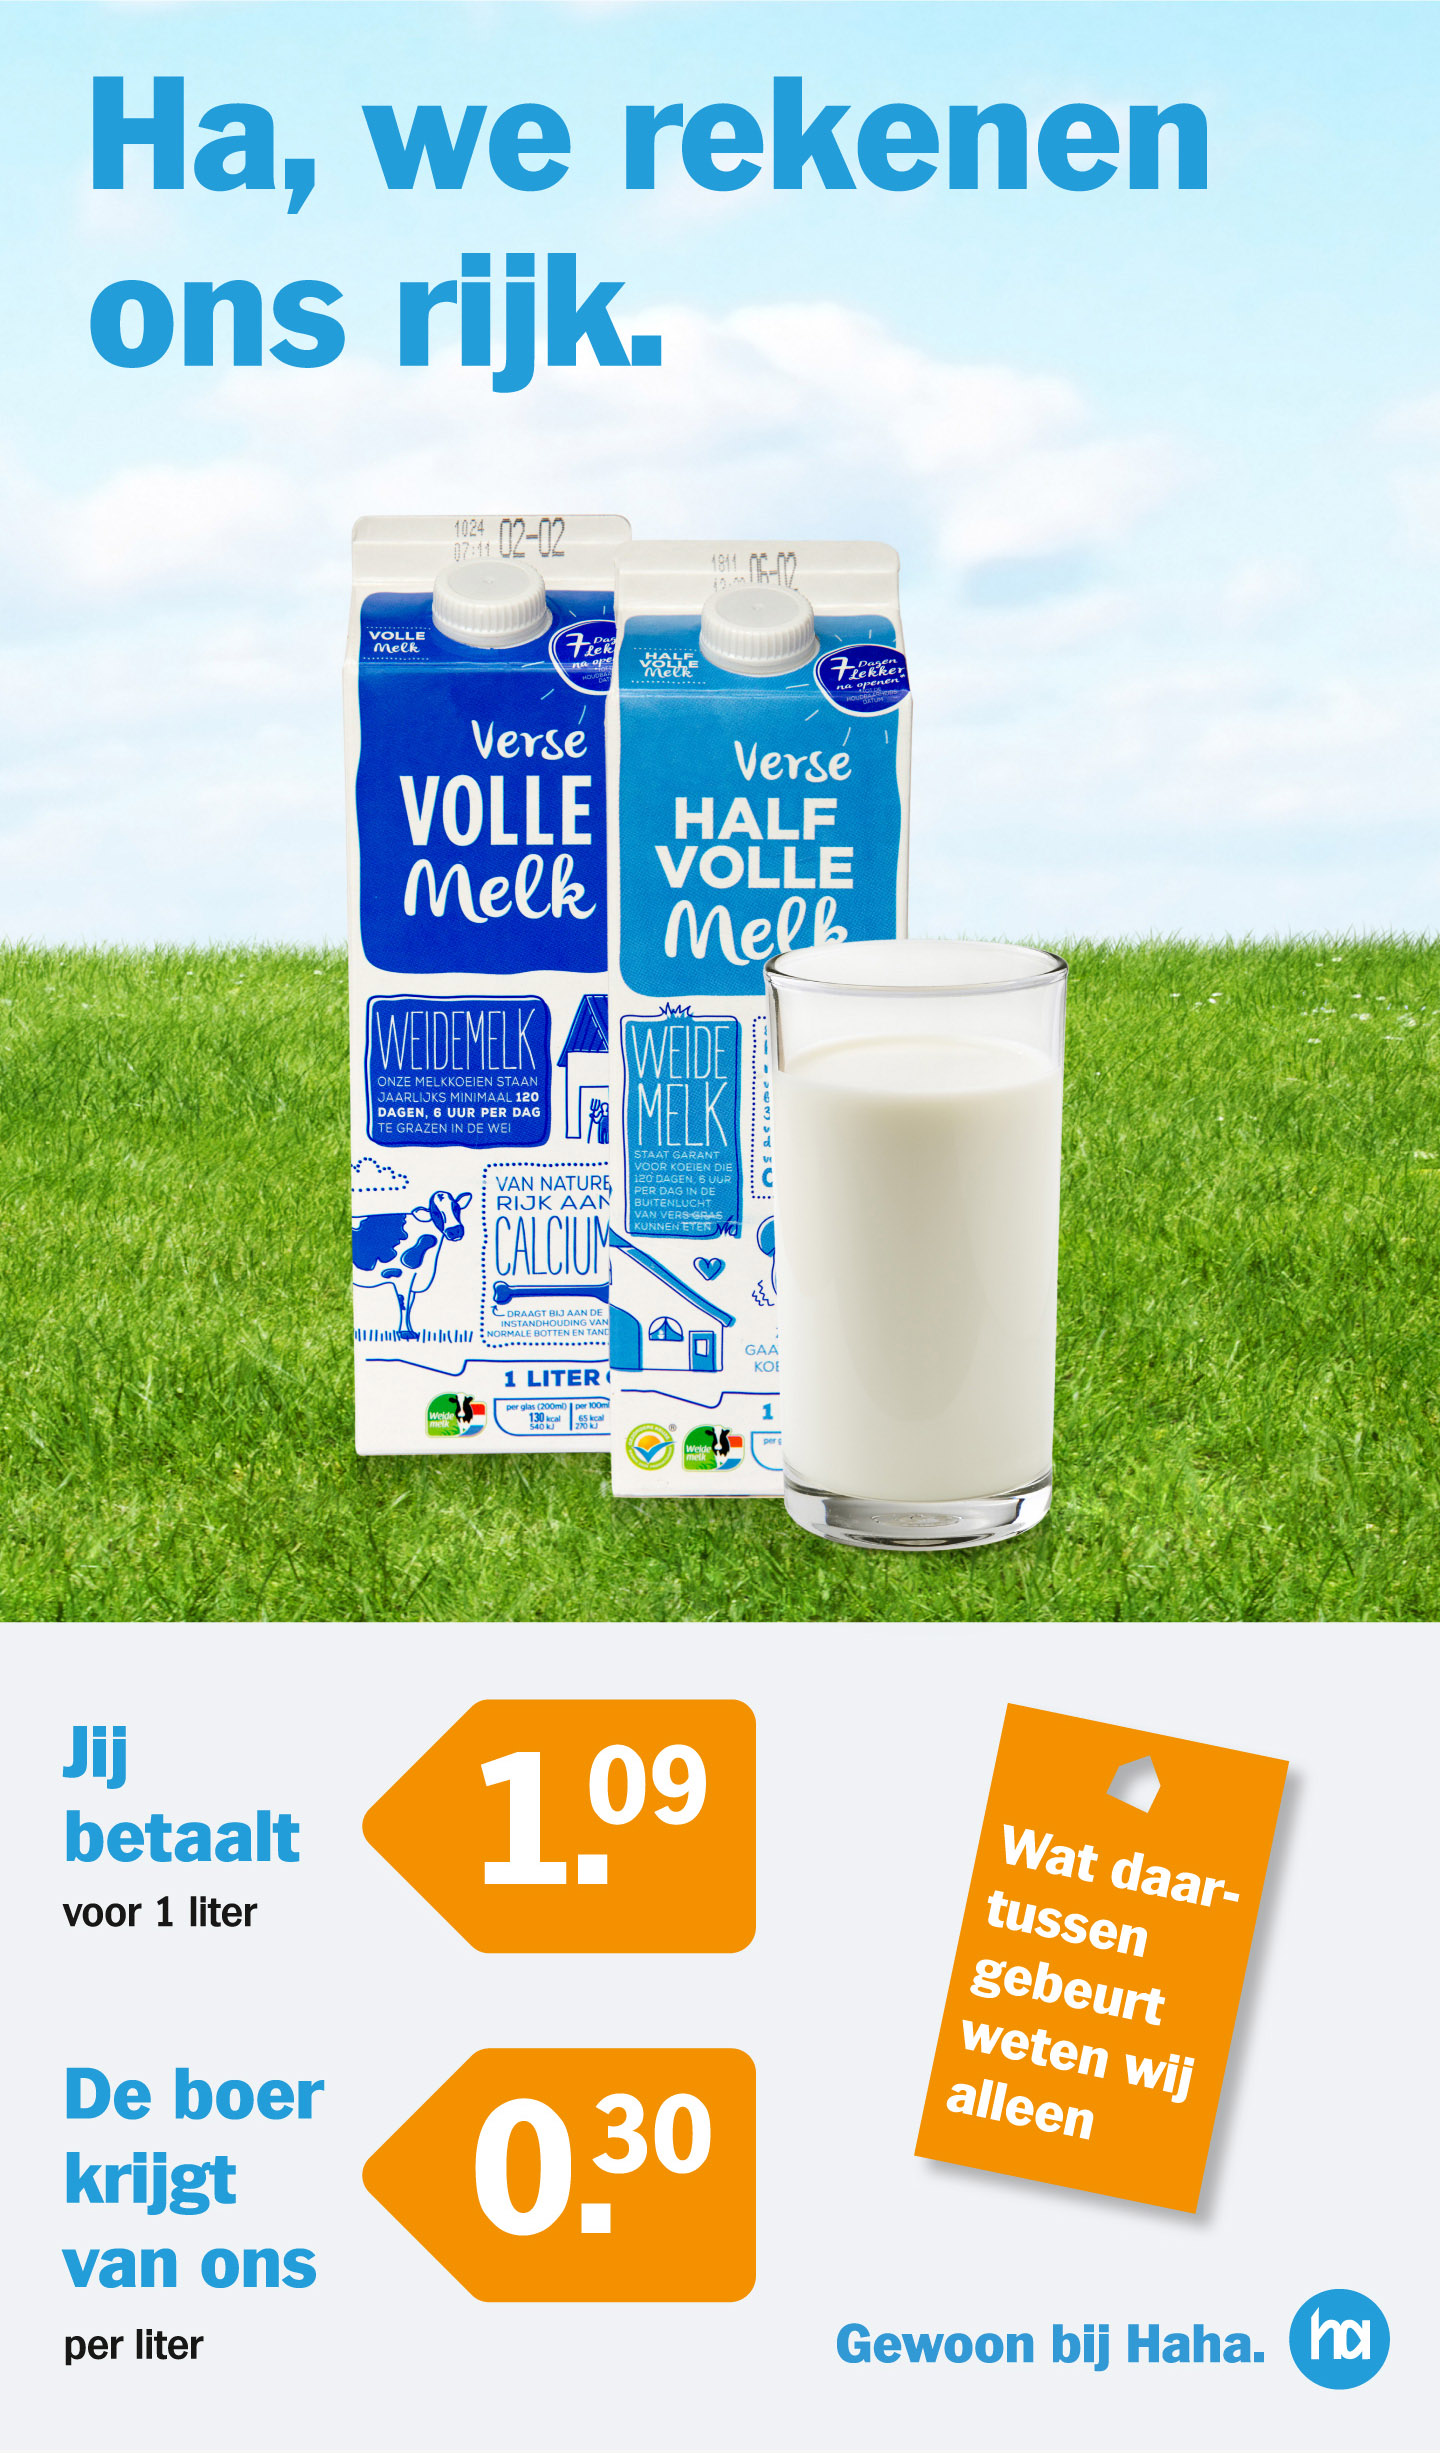 Dagblad-De-Pers-Milieudefensie-Albert-Heijn-advertentie-melk-campagne-graphic-alert-act-impact